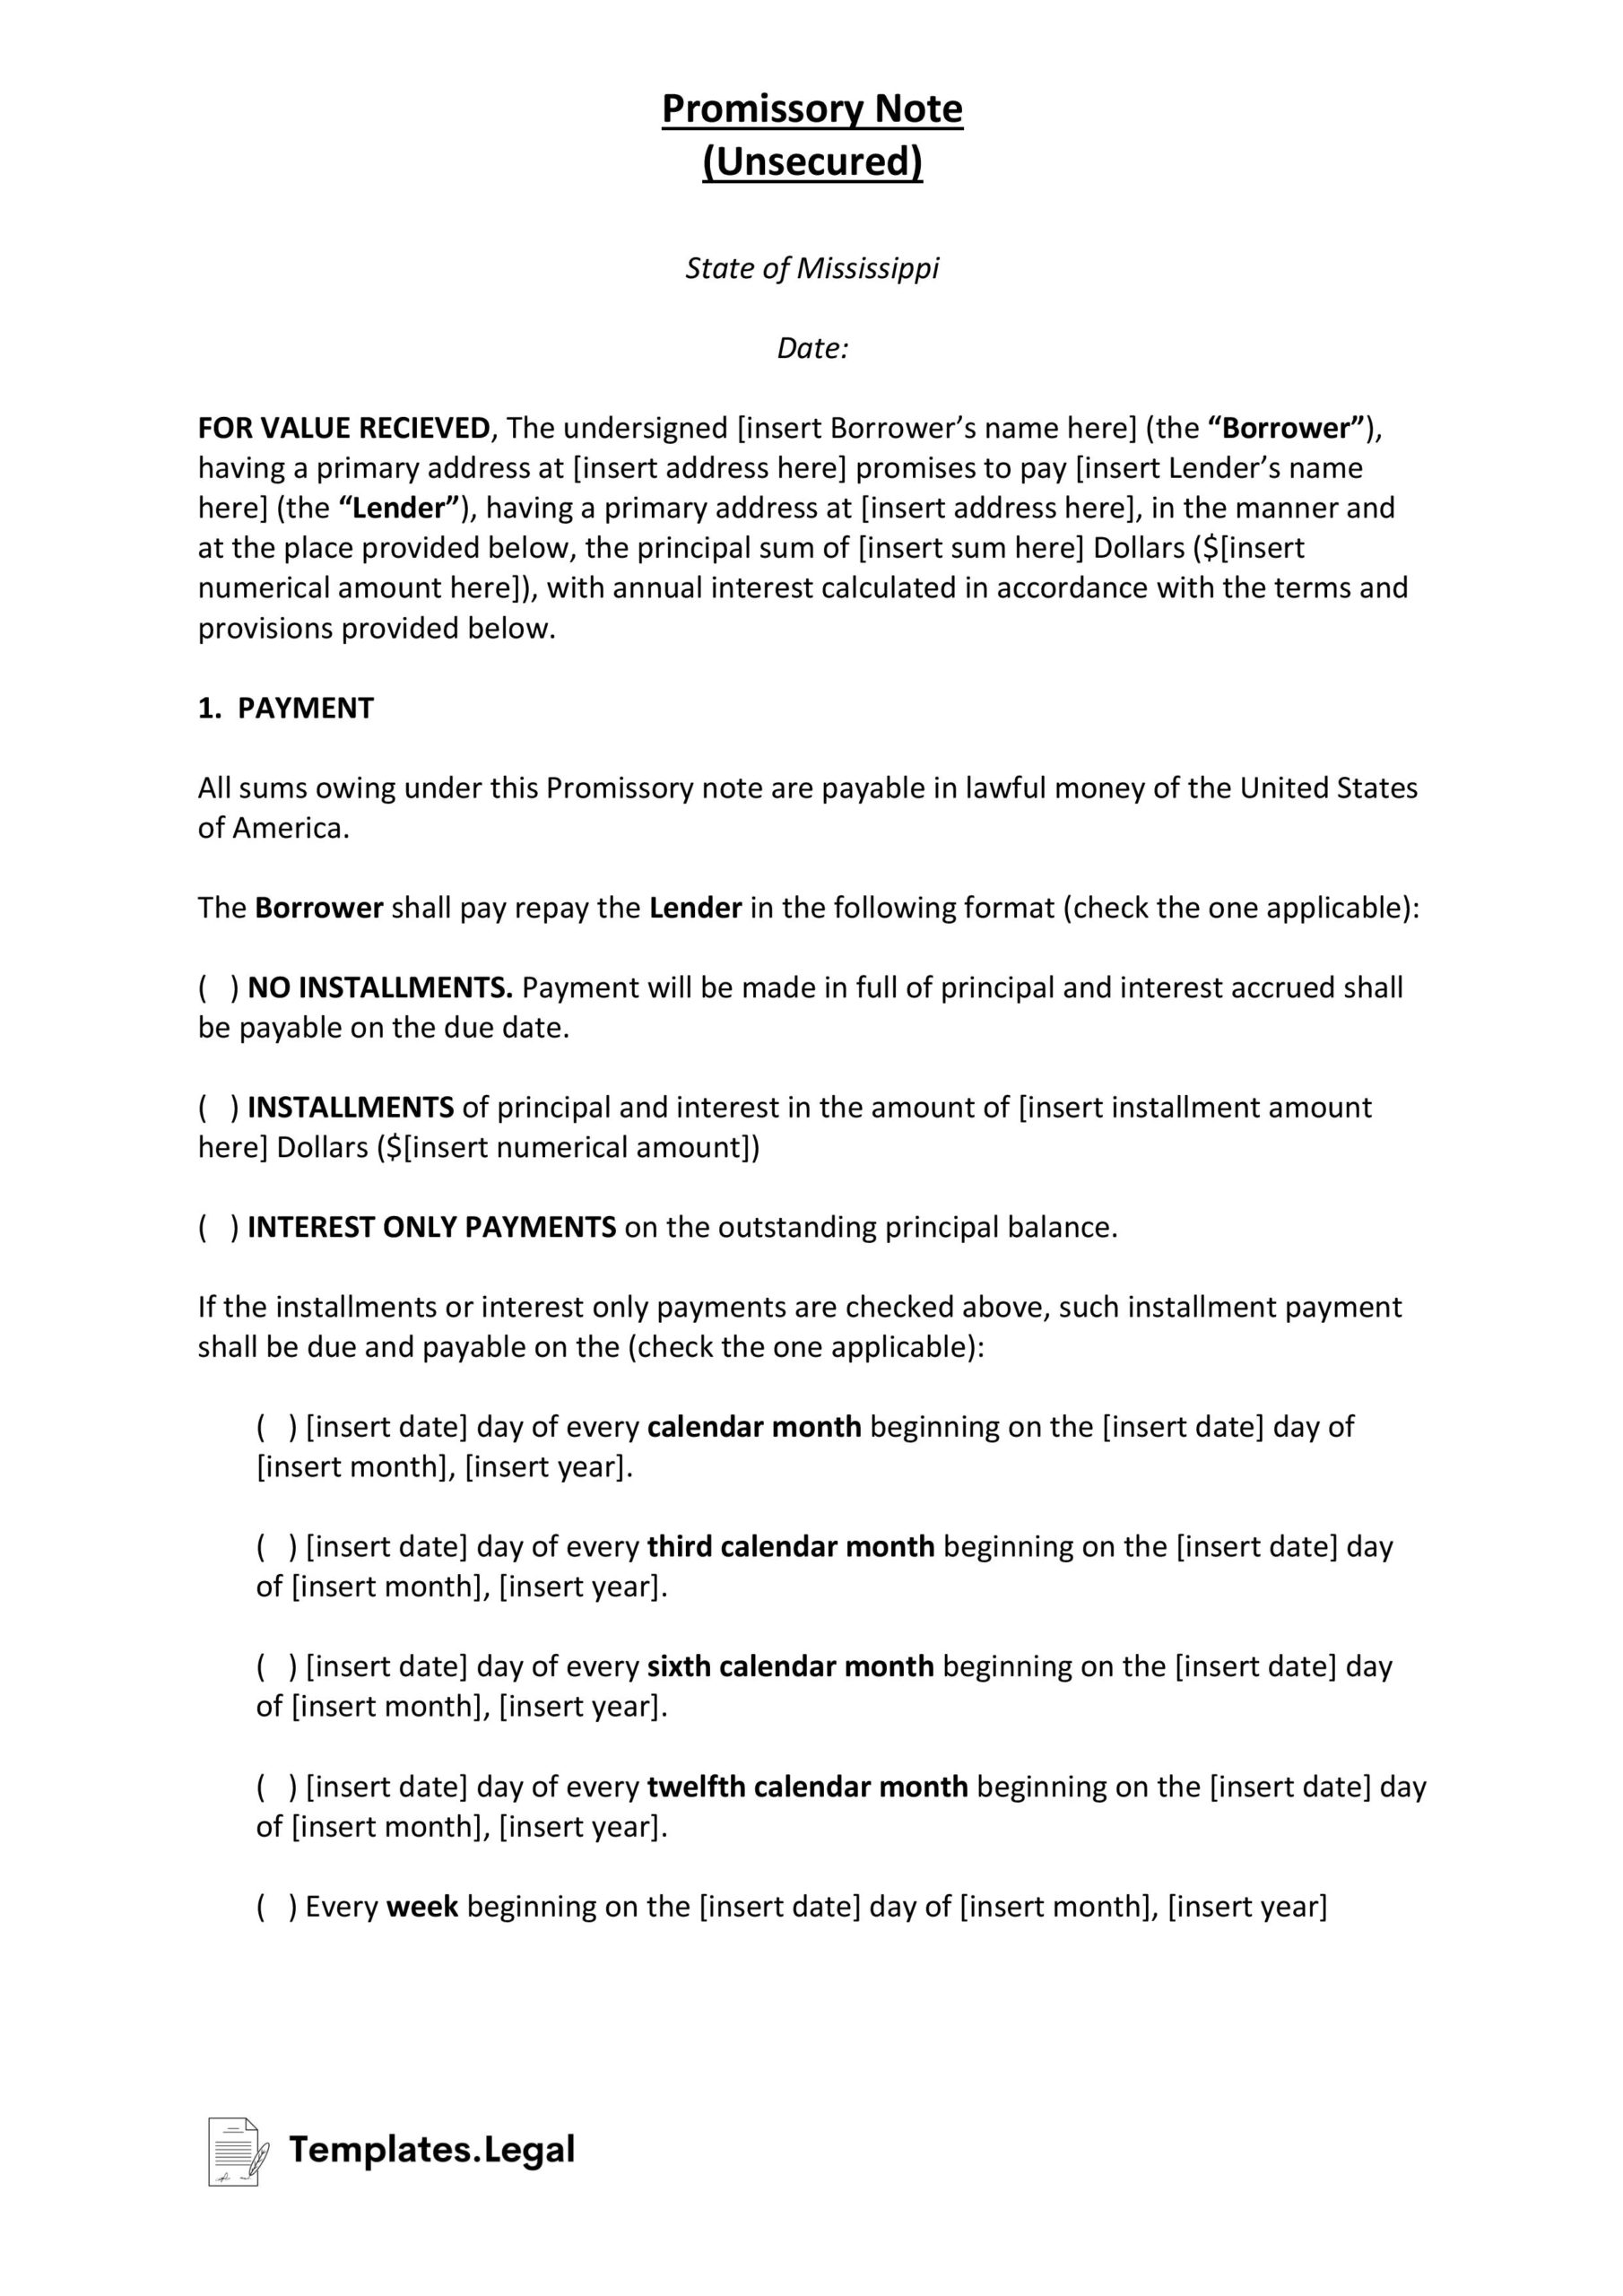 Mississippi Unsecured Promissory Note - Templates.Legal